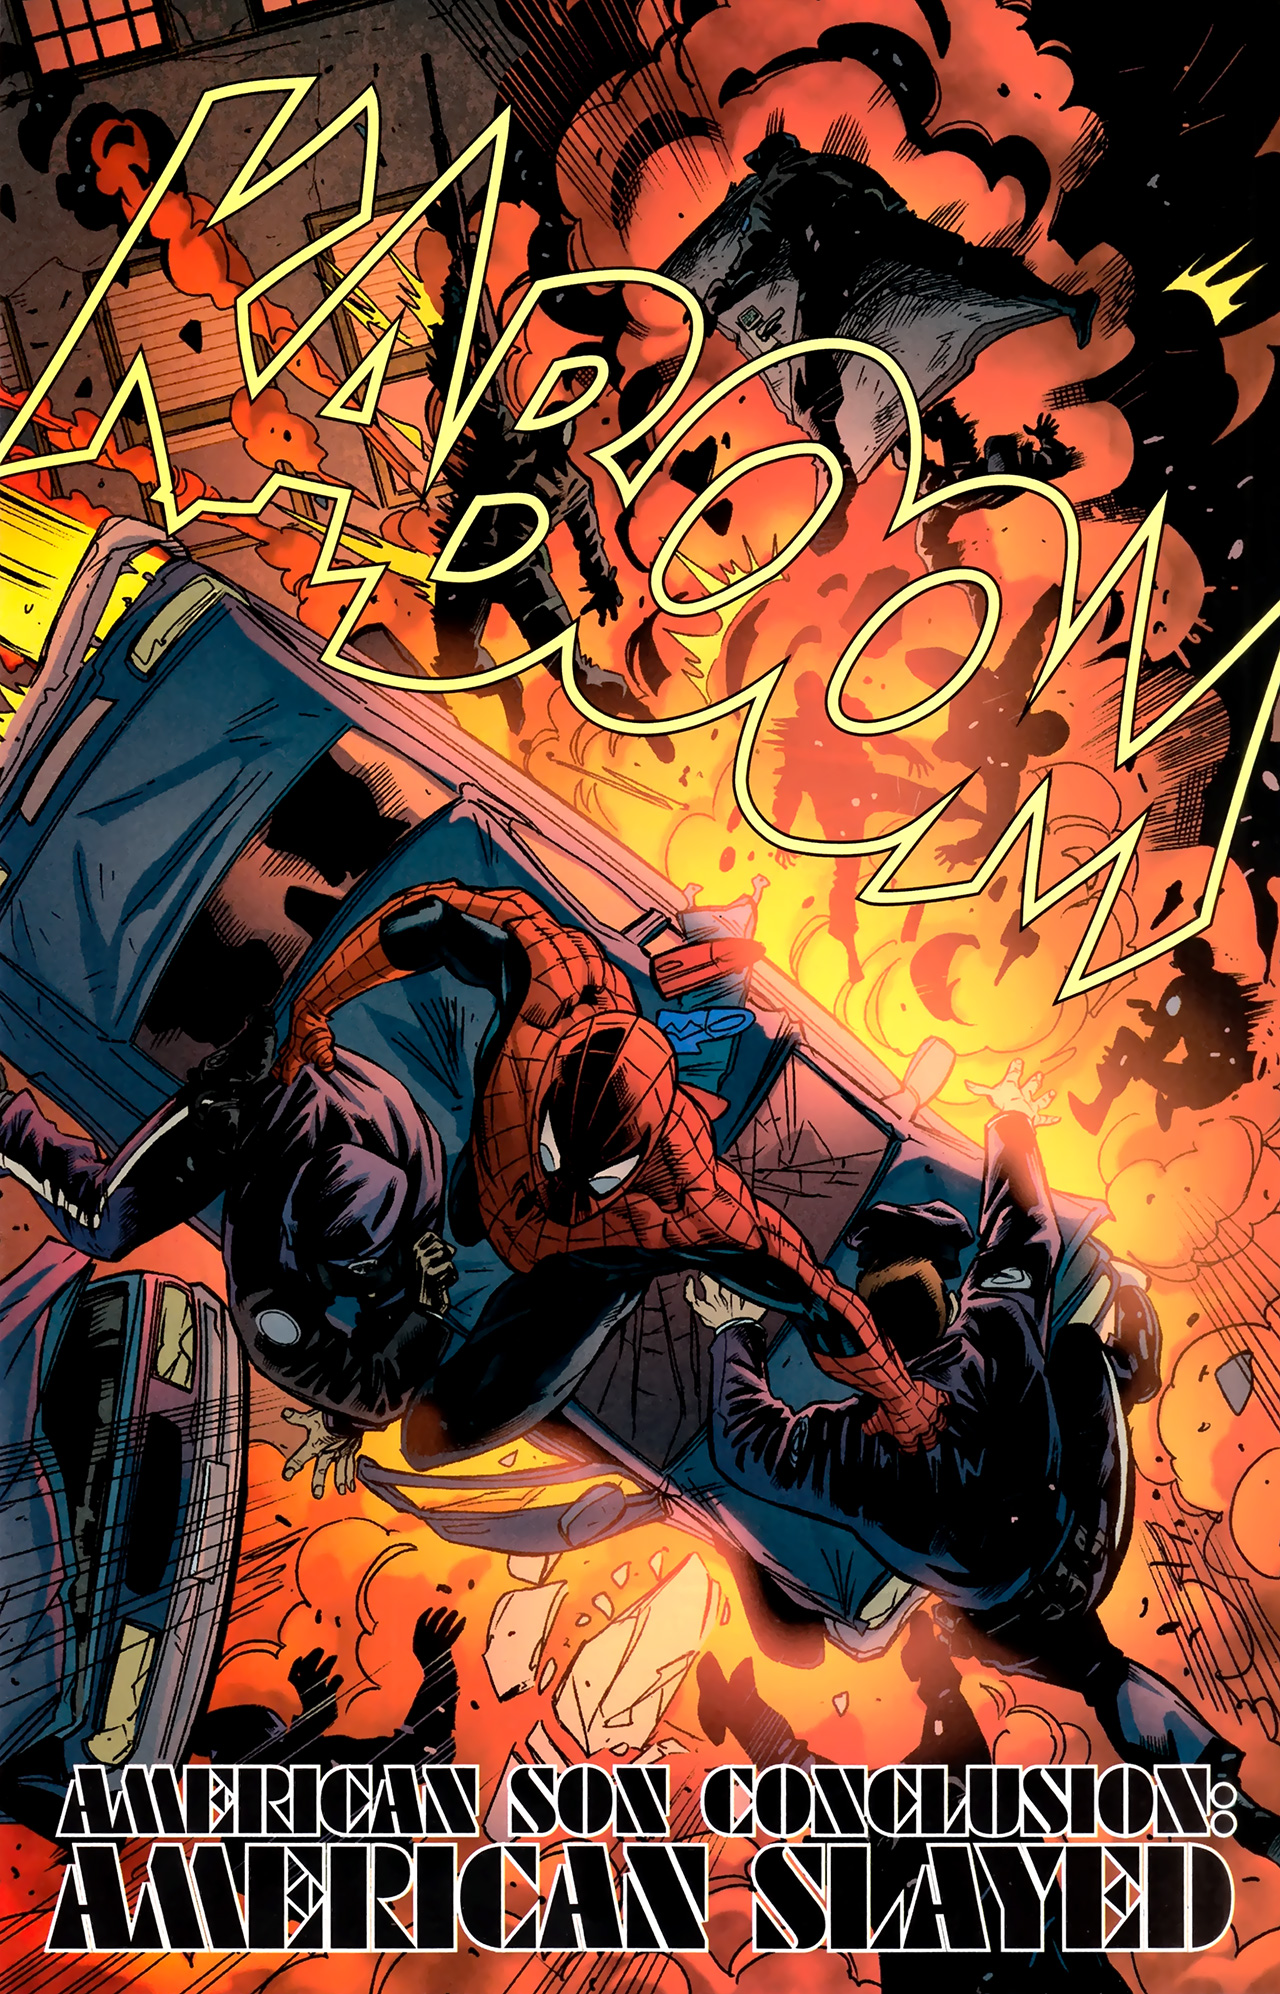 Read online Amazing Spider-Man Presents: American Son comic -  Issue #4 - 4